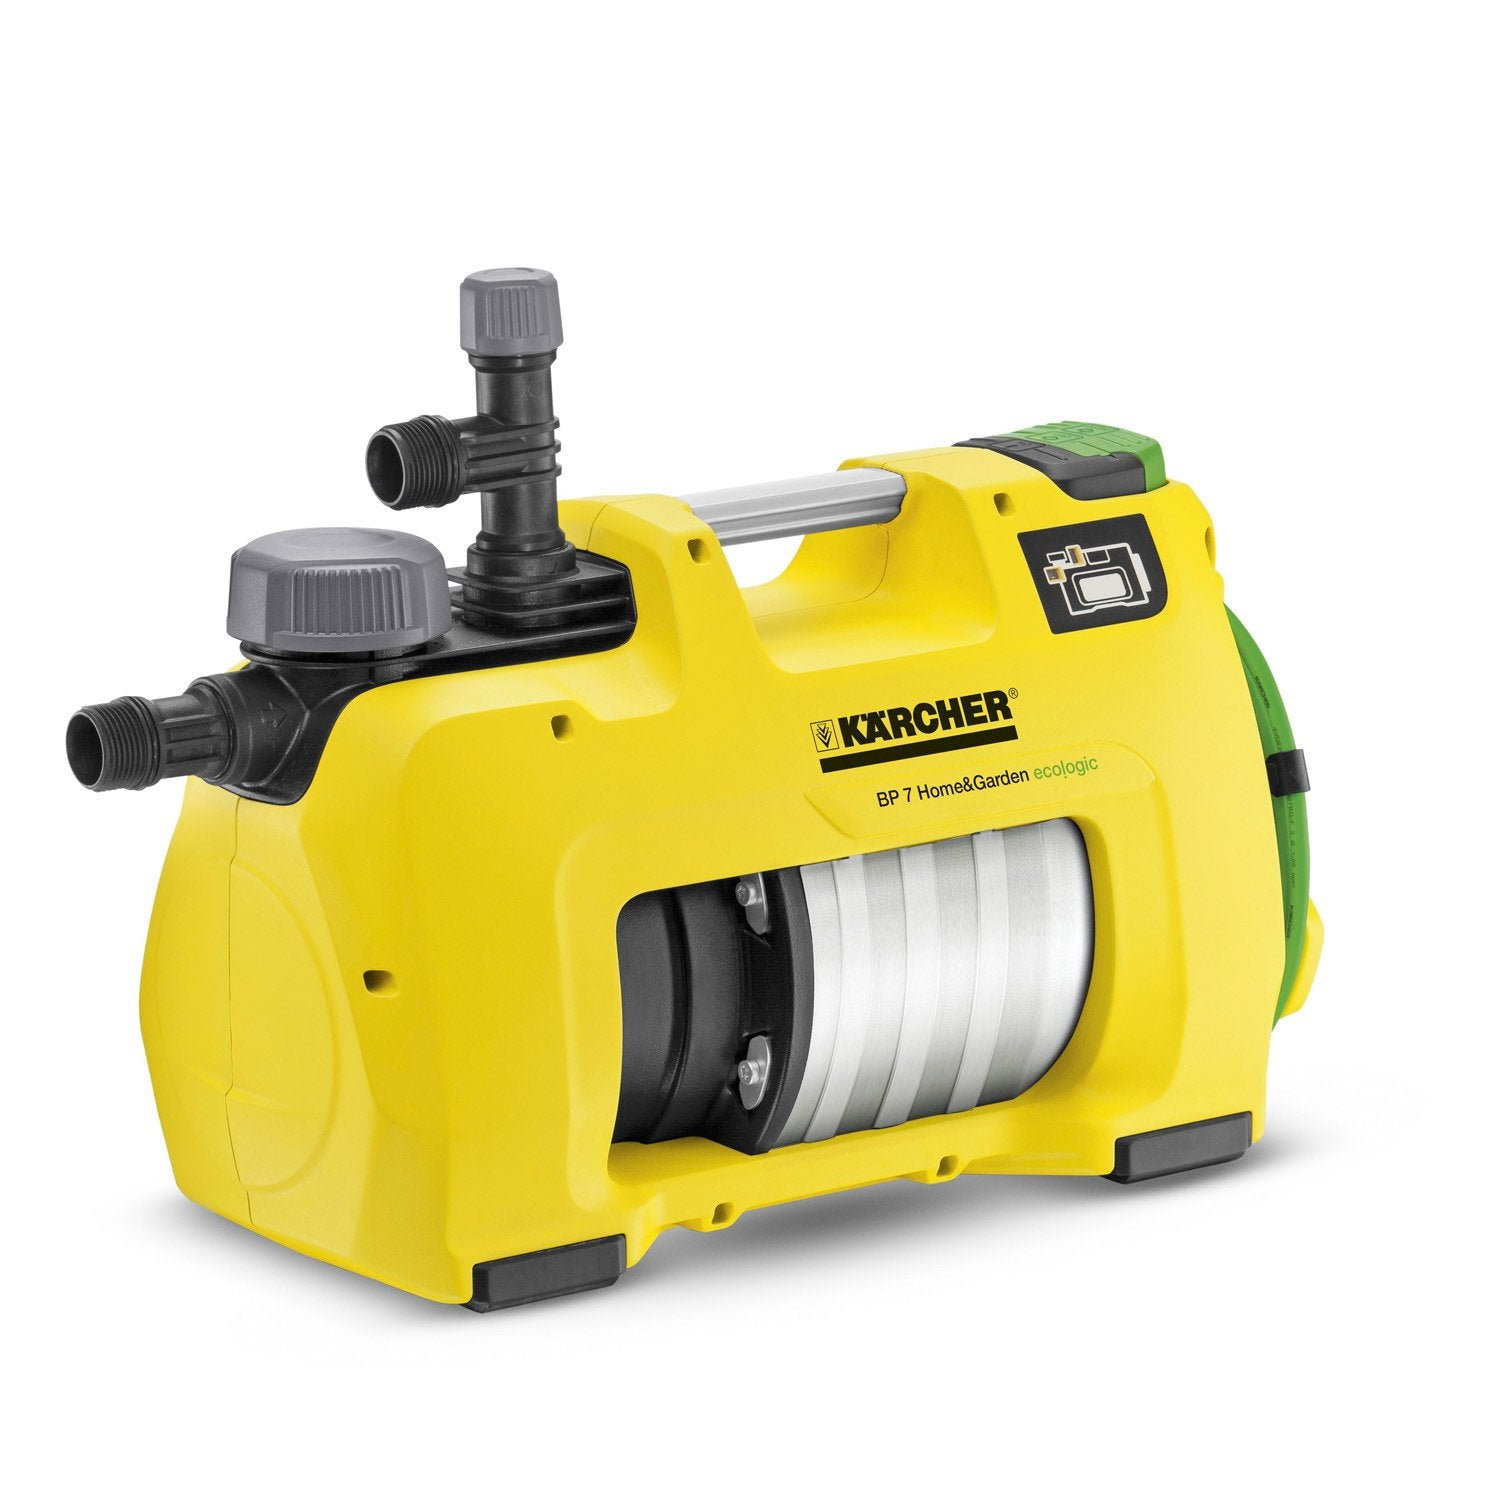 Pompe arrosage automatique karcher bp7 home and garden eco ogic 6000 l h l - Prix karcher leroy merlin ...